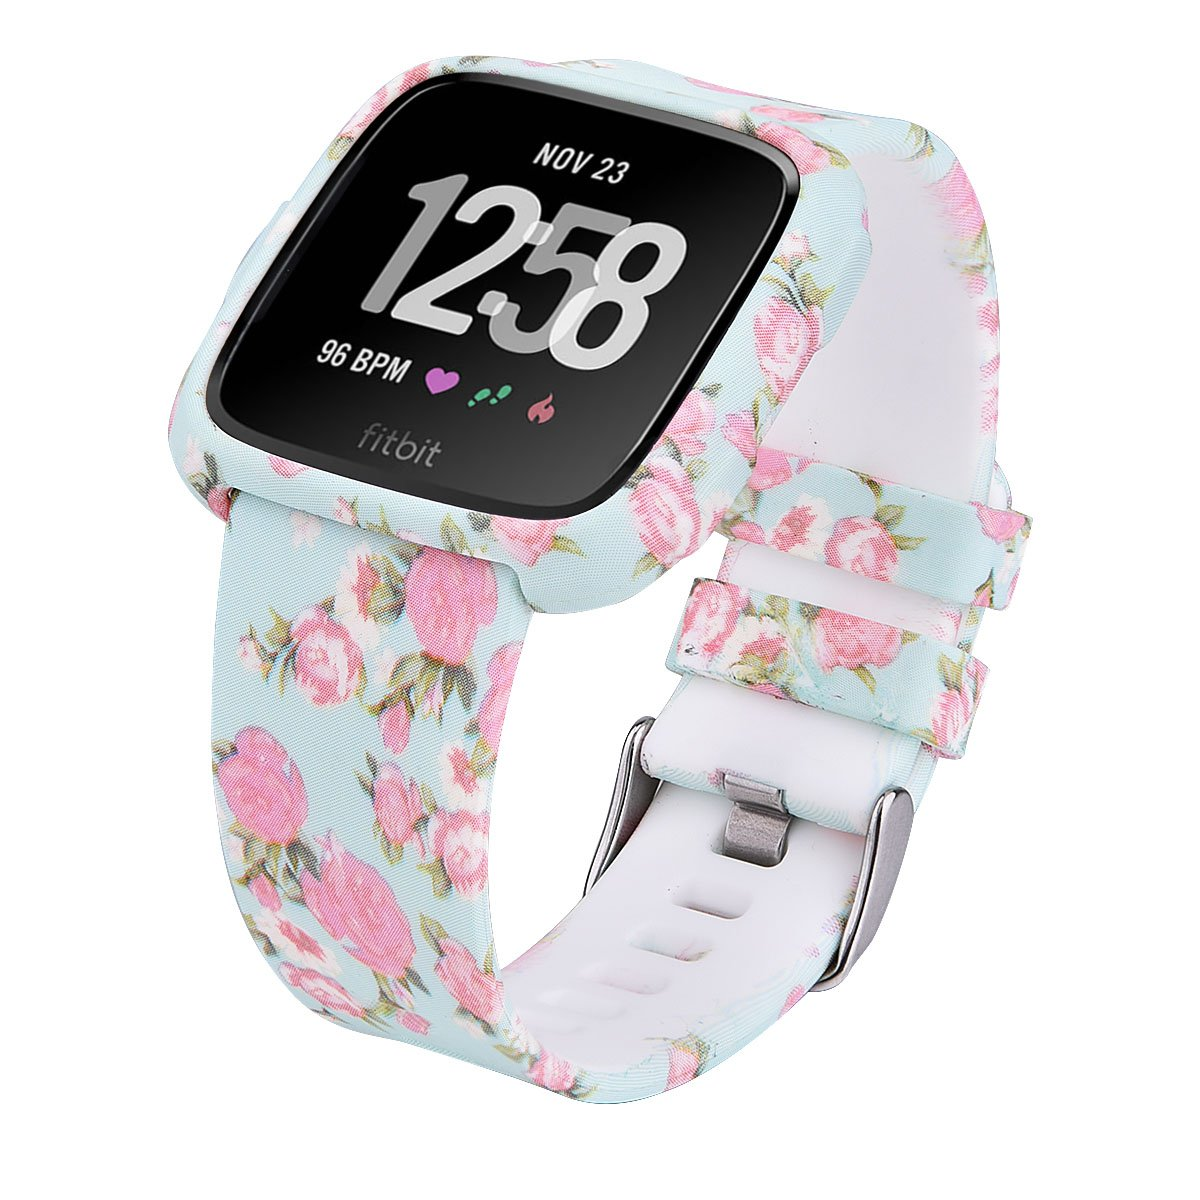 Compatible Fitbit Versa Bands for Women Men- CAGOS Sport Silicone Strap Replacement Bands Bracelet Wristband with TPU Protective Face Cover Case for Fitbit Versa Smartwatch (Pale Blue Rose, Small)